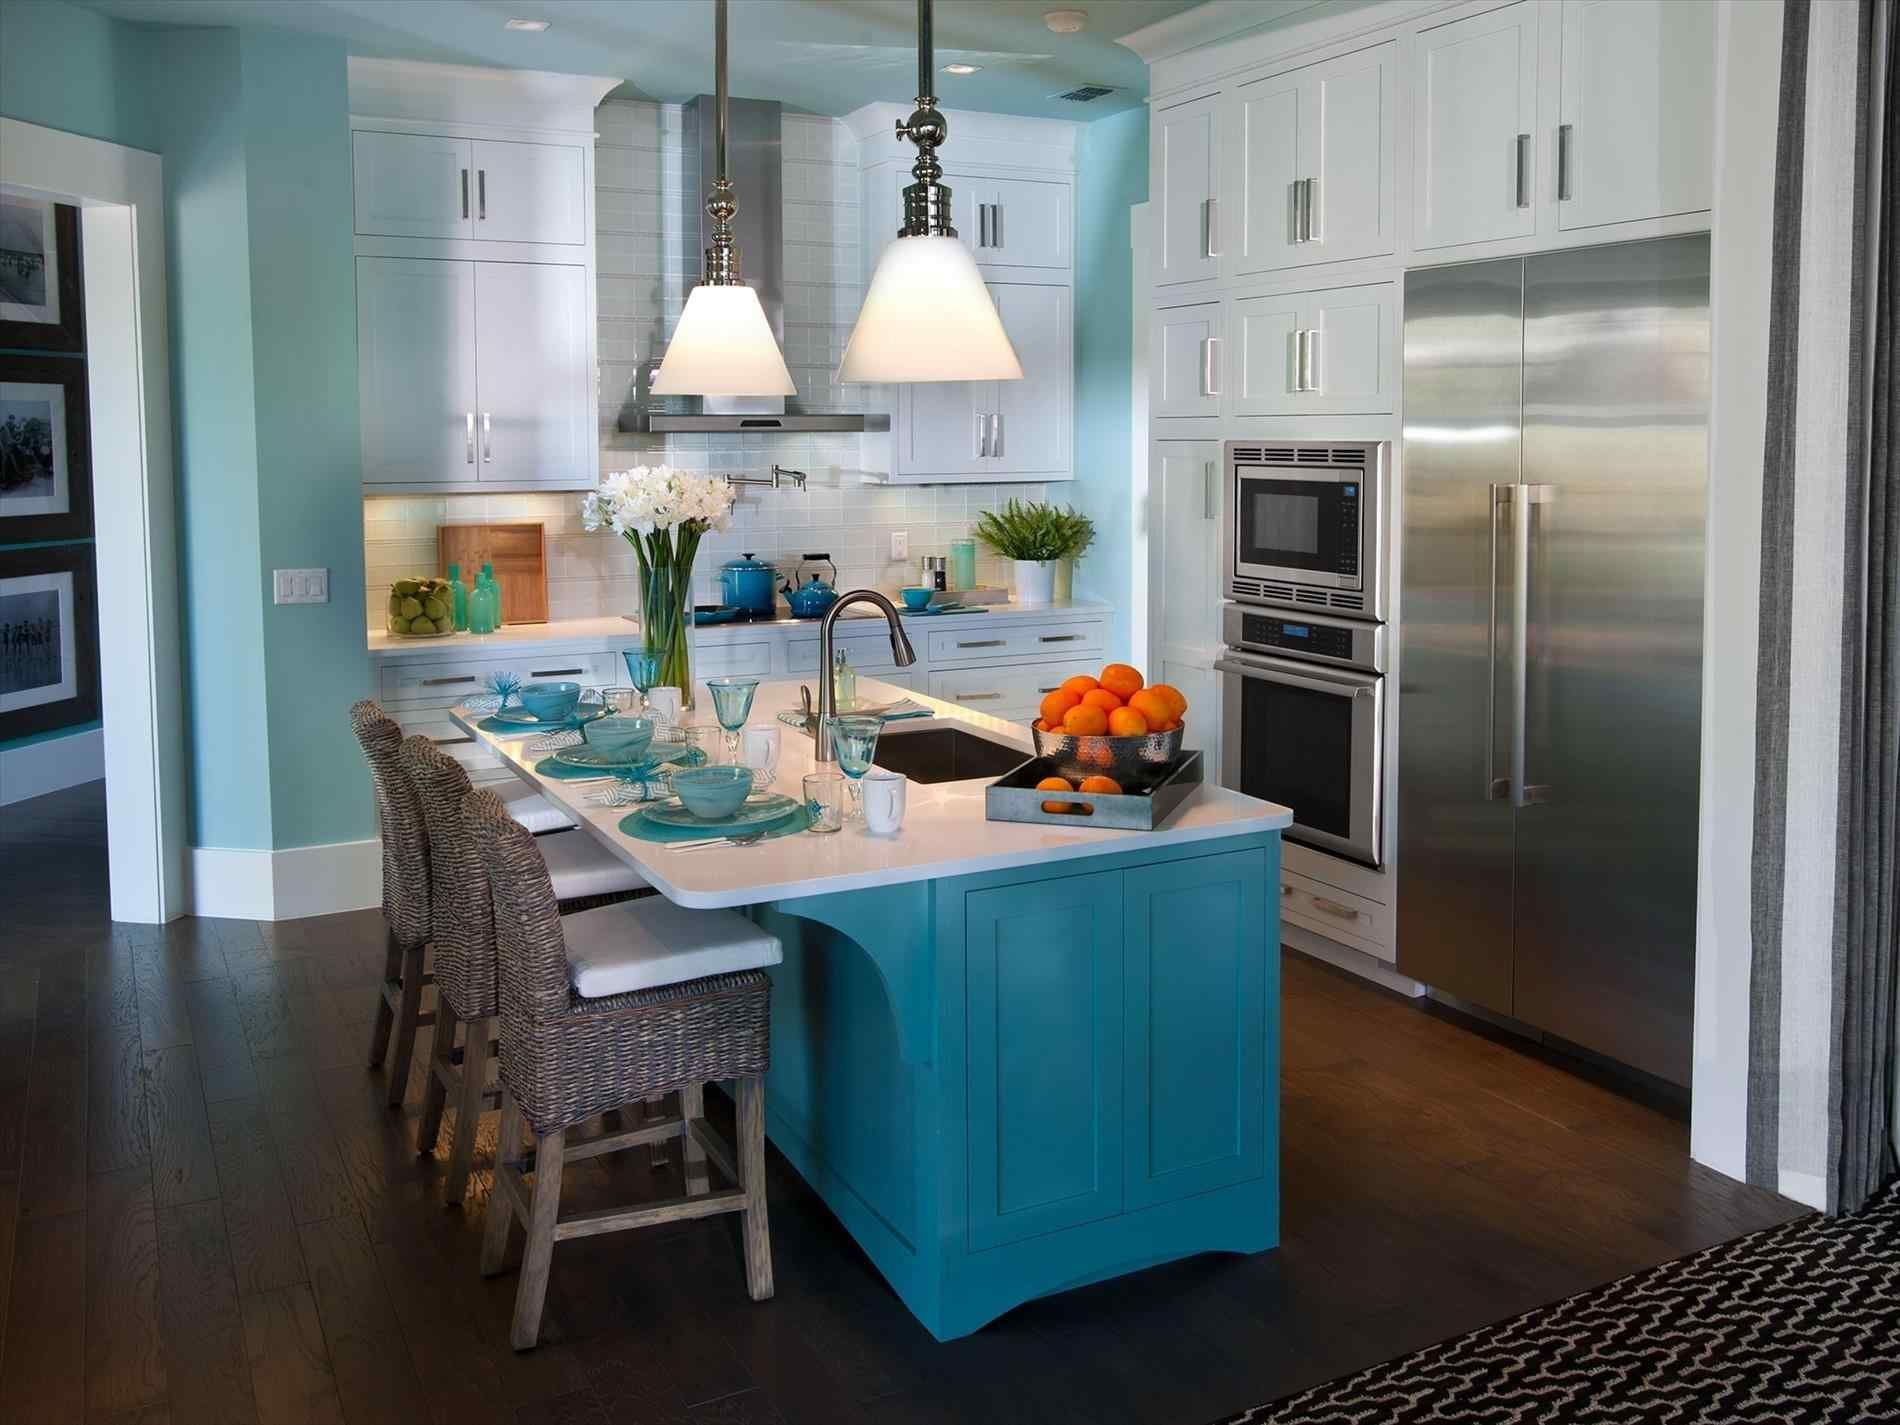 13 Wonderful Teal Kitchen Decorating Ideas That You Must Know